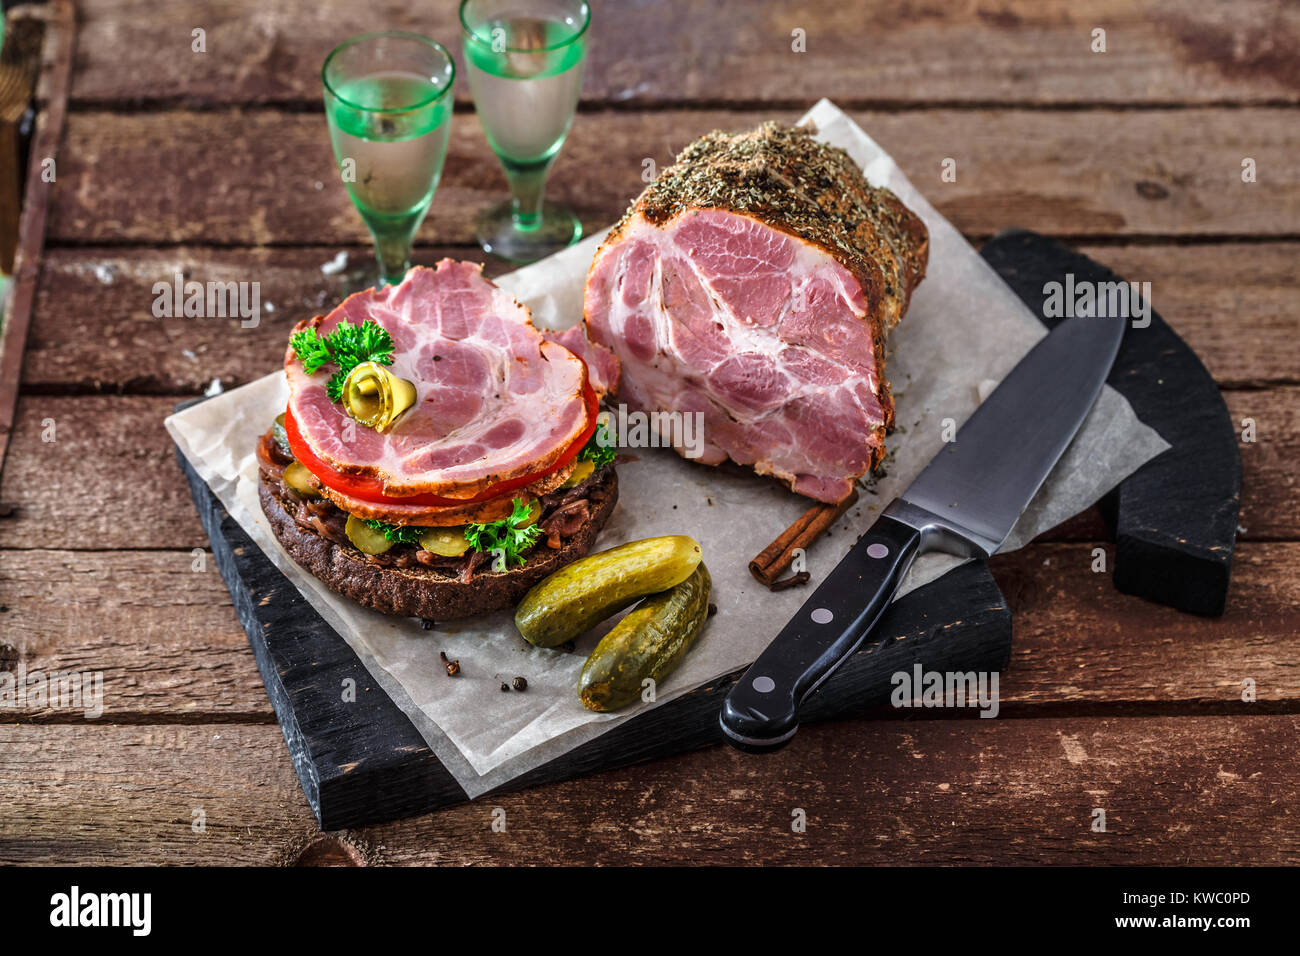 Delicious rye sandwich with smoked ham, tomato, onion jam, pickles and vodka. - Stock Image